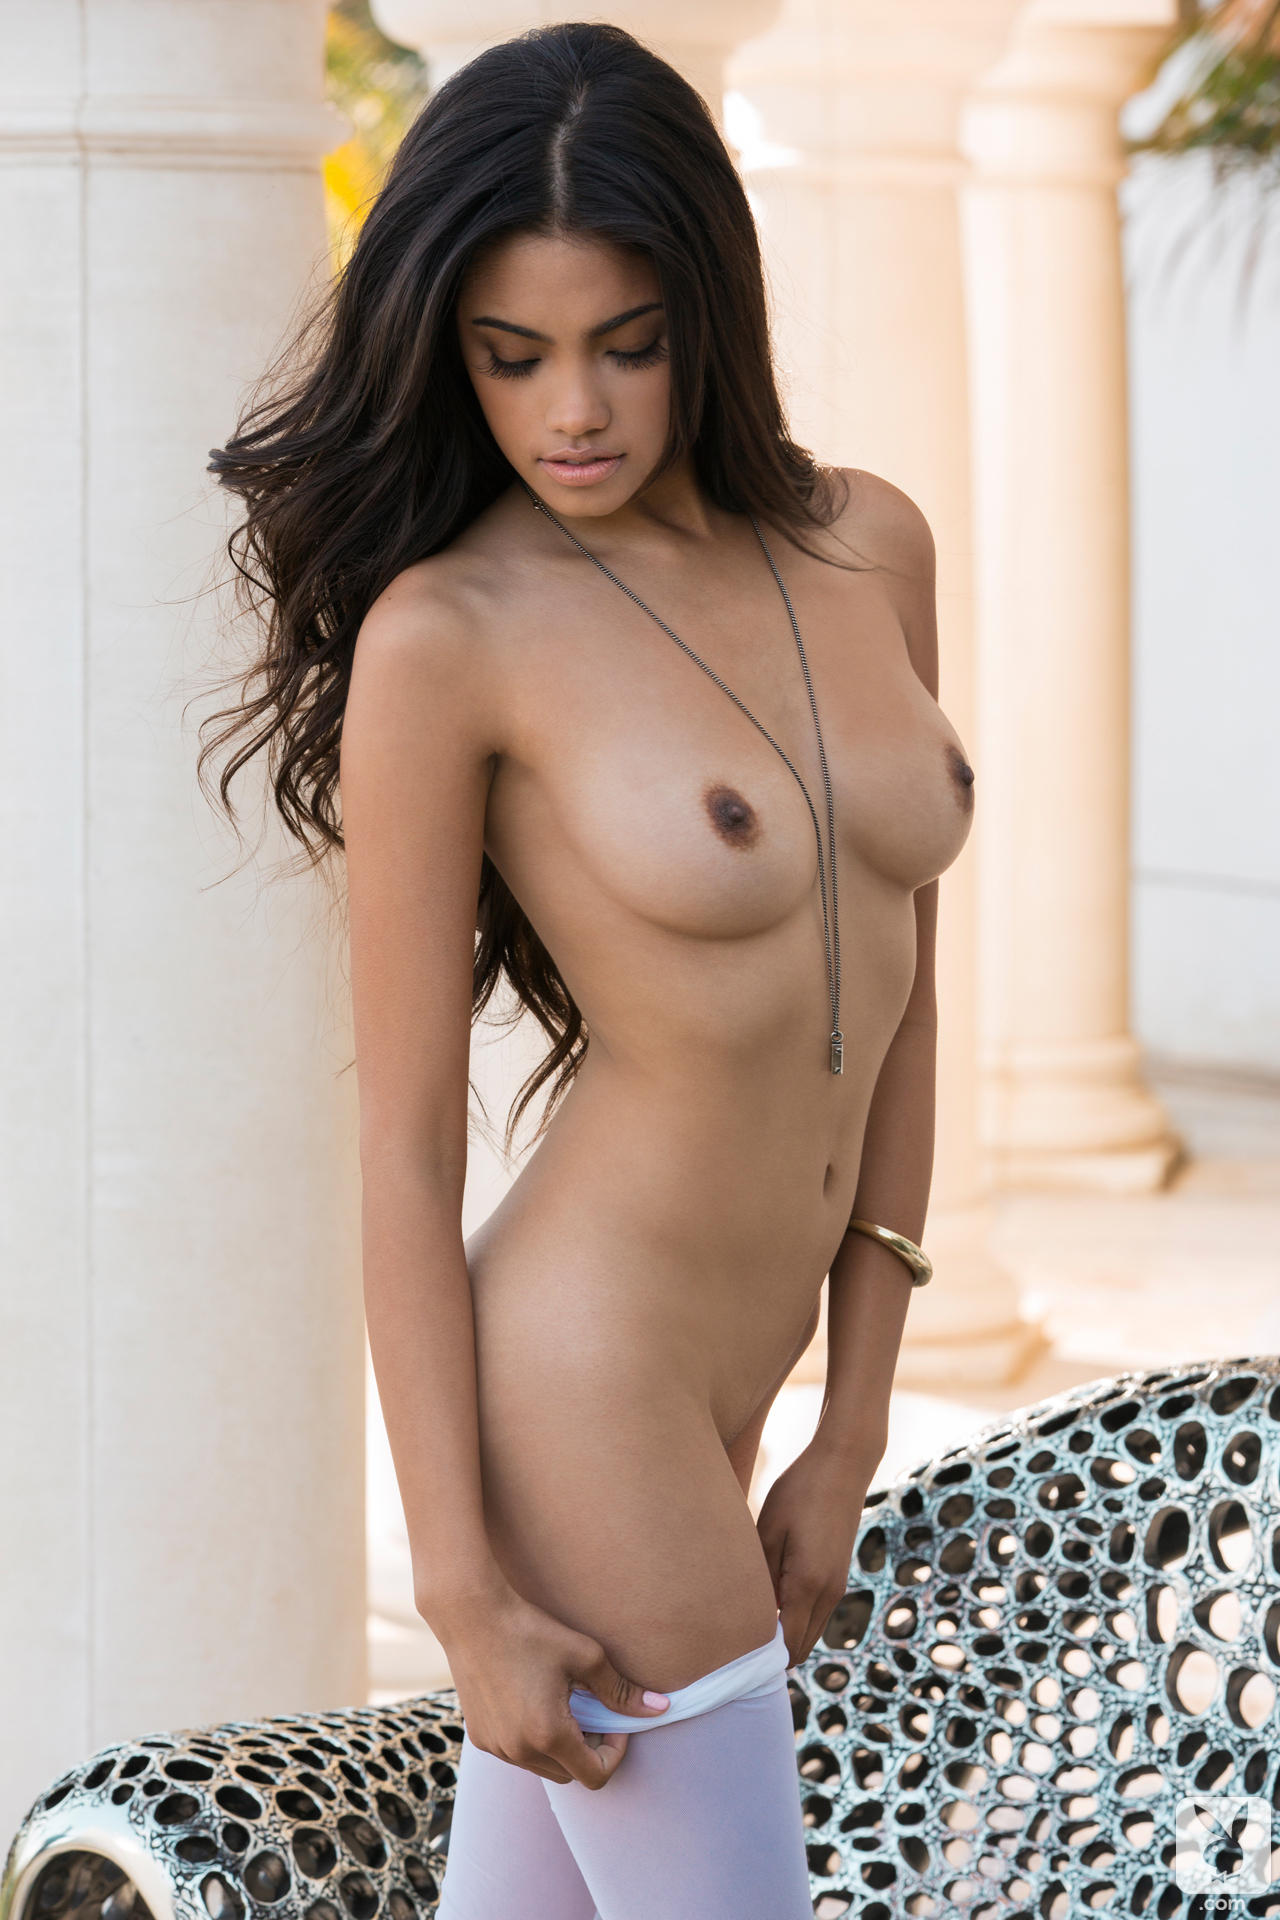 Half naked latina girl, tottaly spies sex